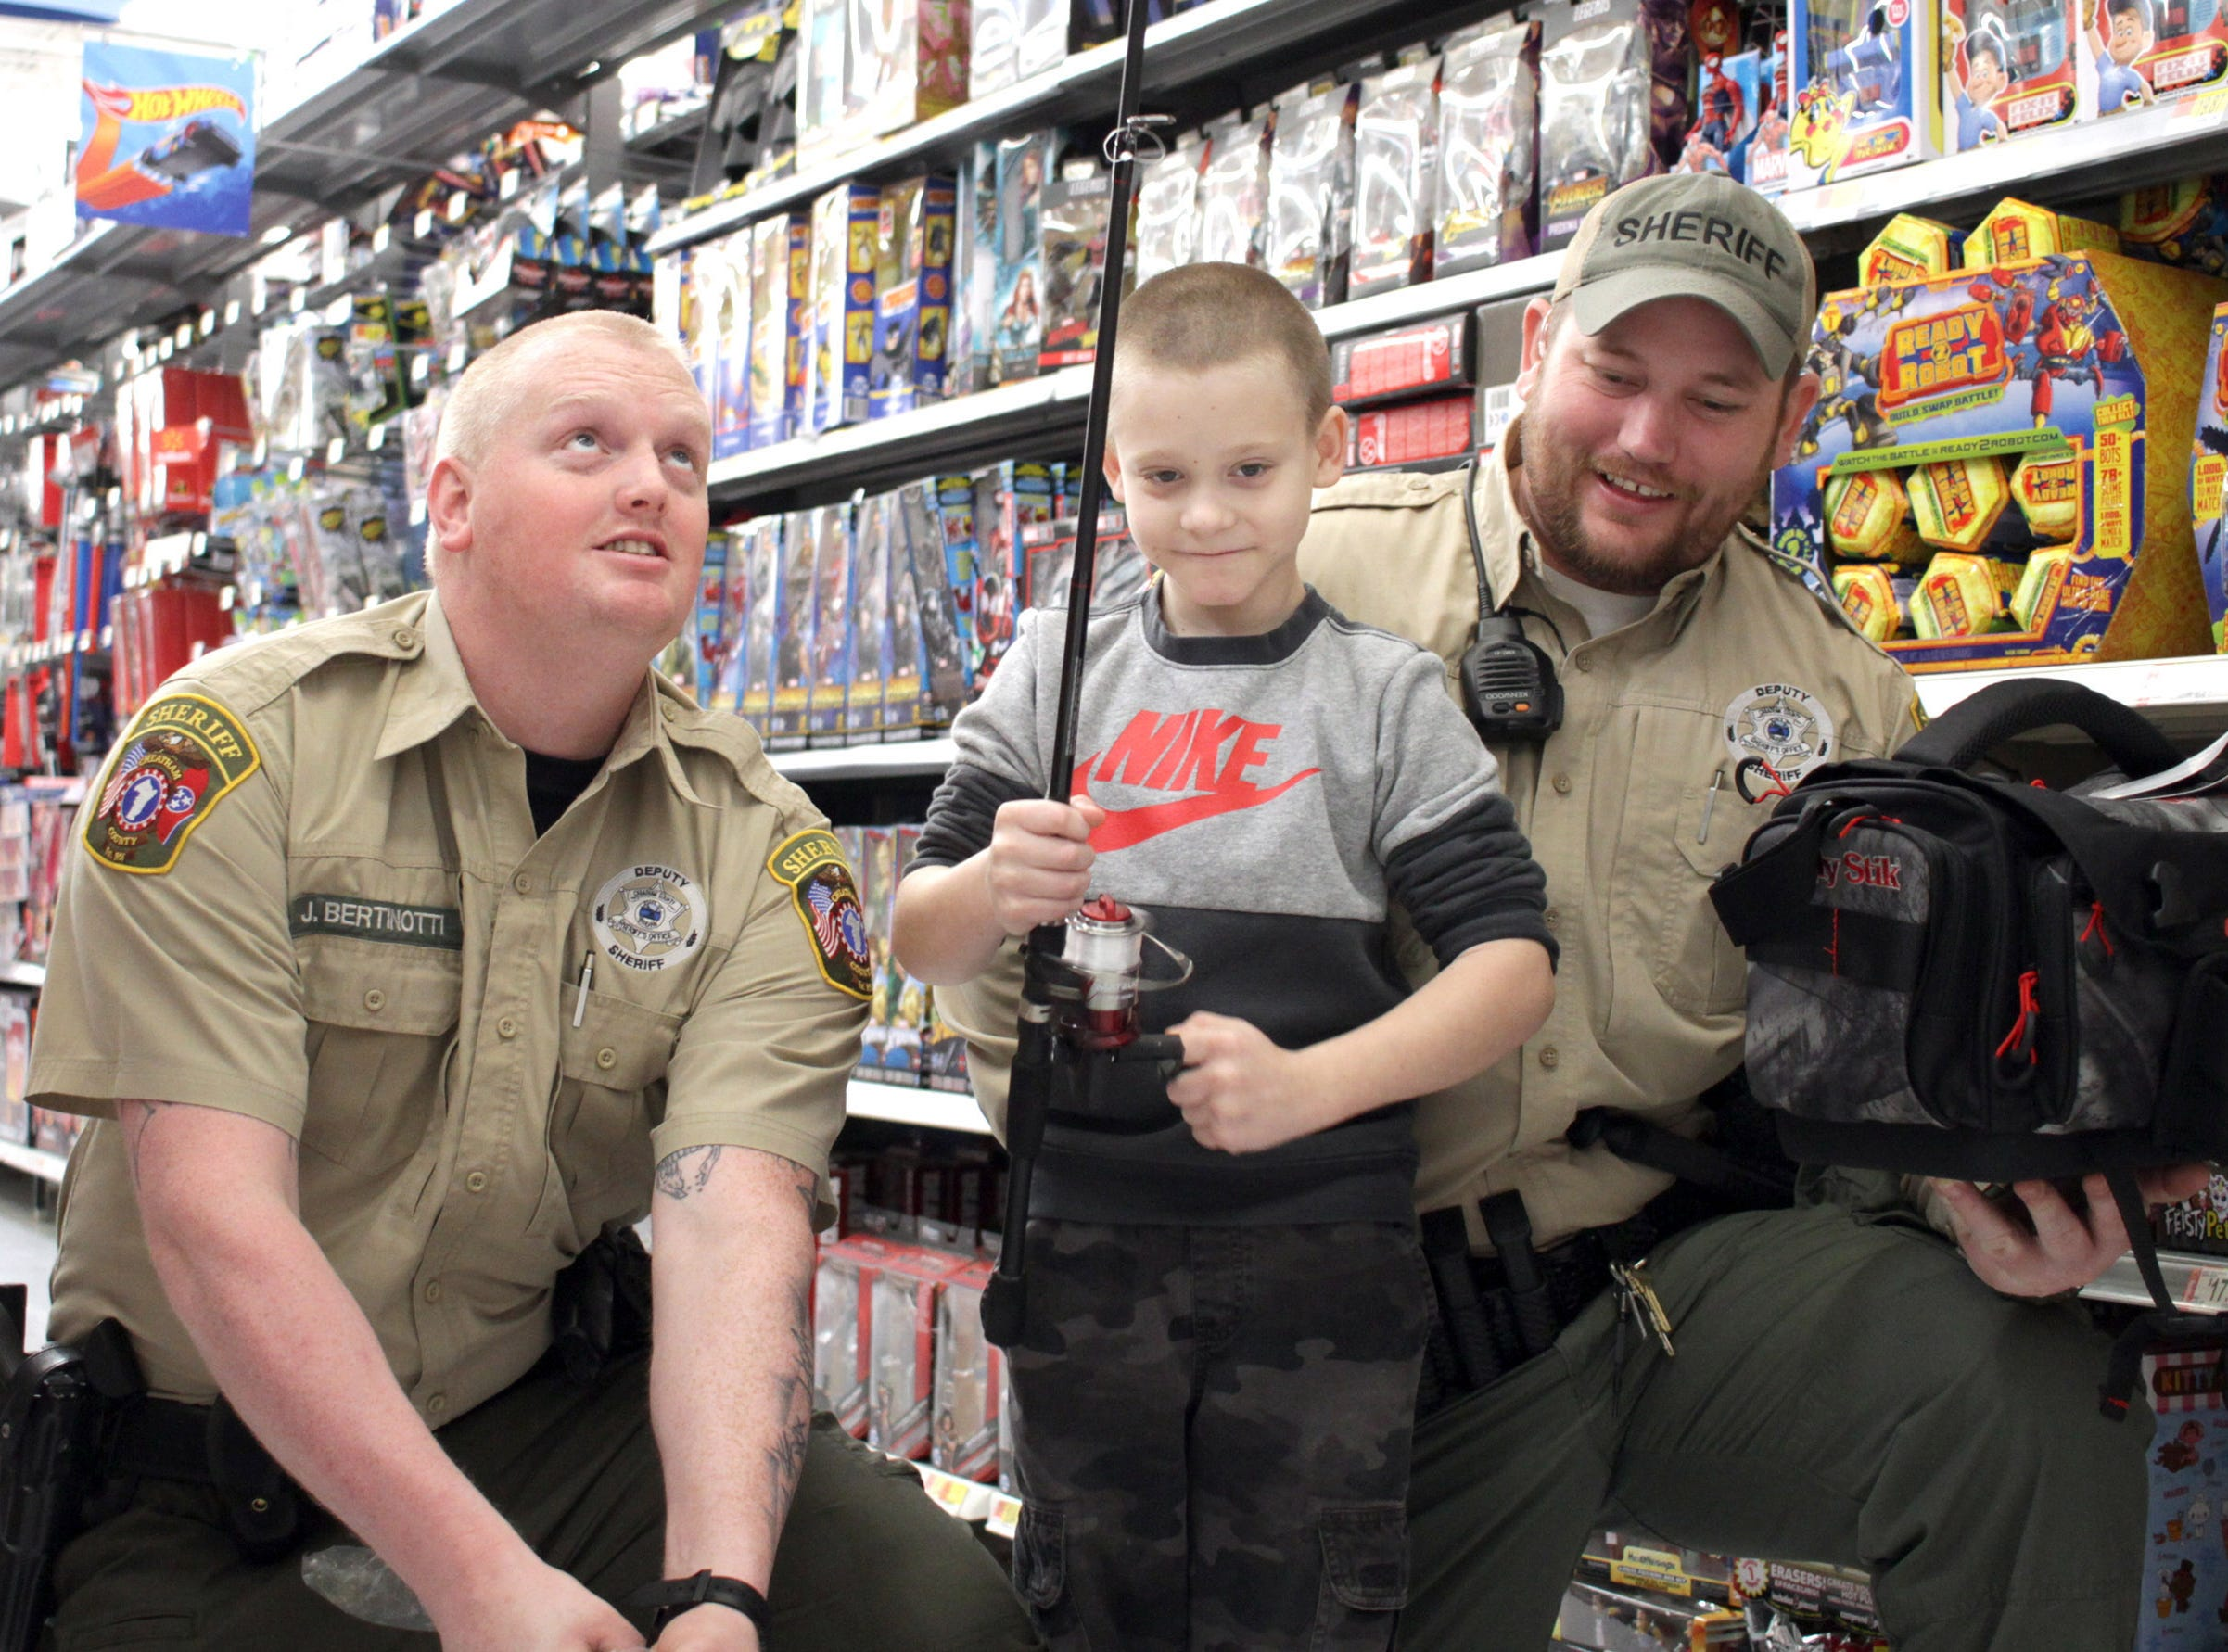 Tyler Allen (8) shops for fishing equipment with Officer James Bertinotti and Travis Kretz at Shop with a Cop in Ashland City on Saturday, December 15, 2018.